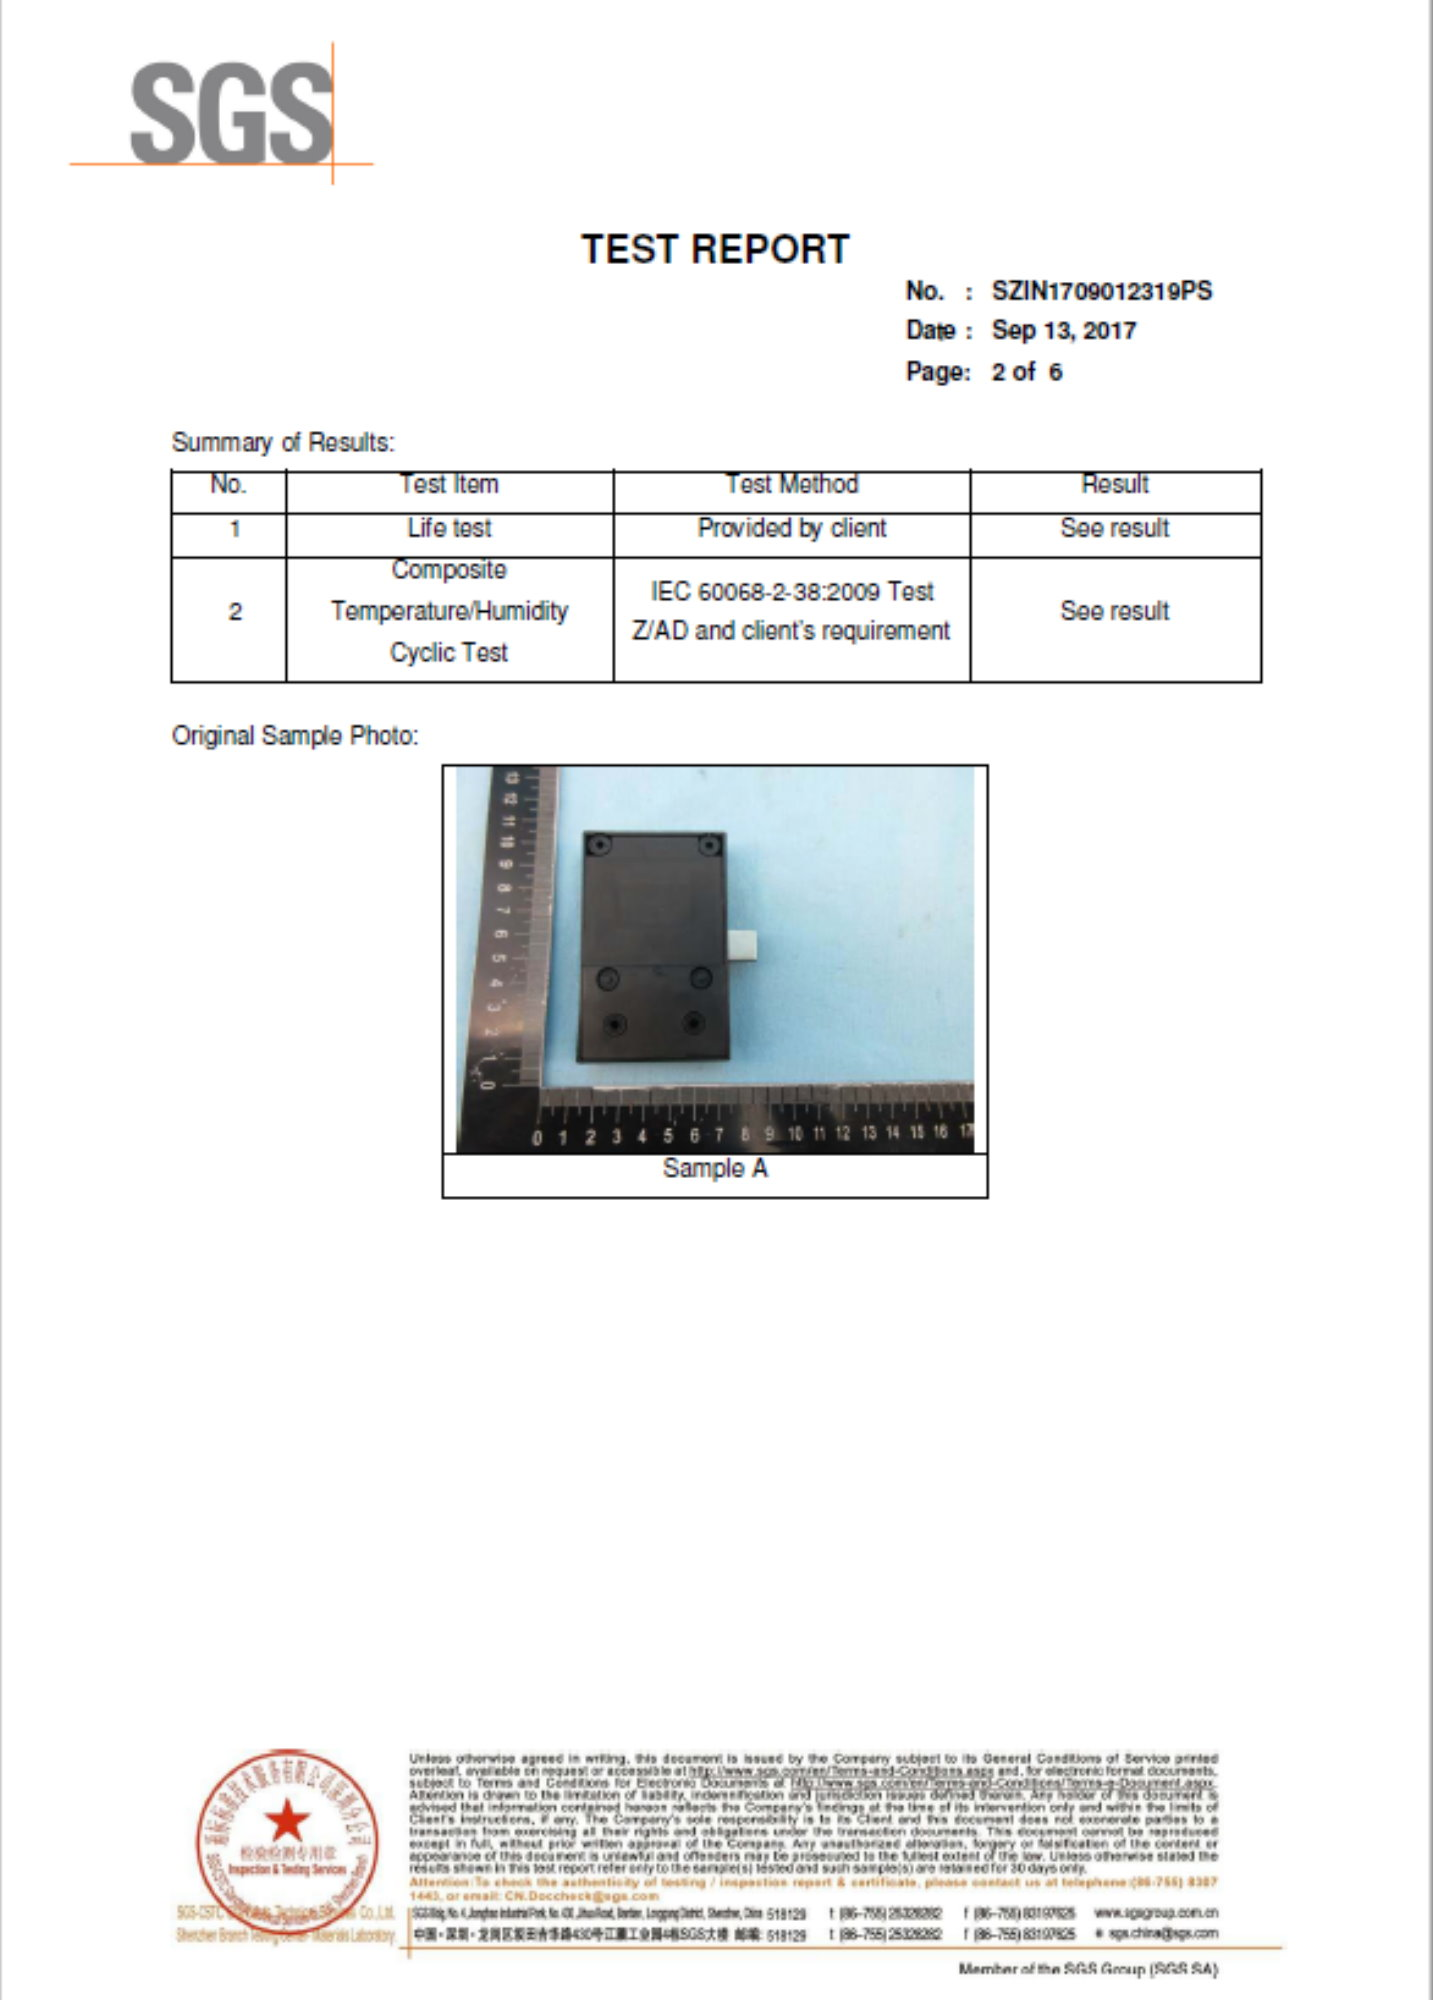 SGS Test Report-SDWS 2